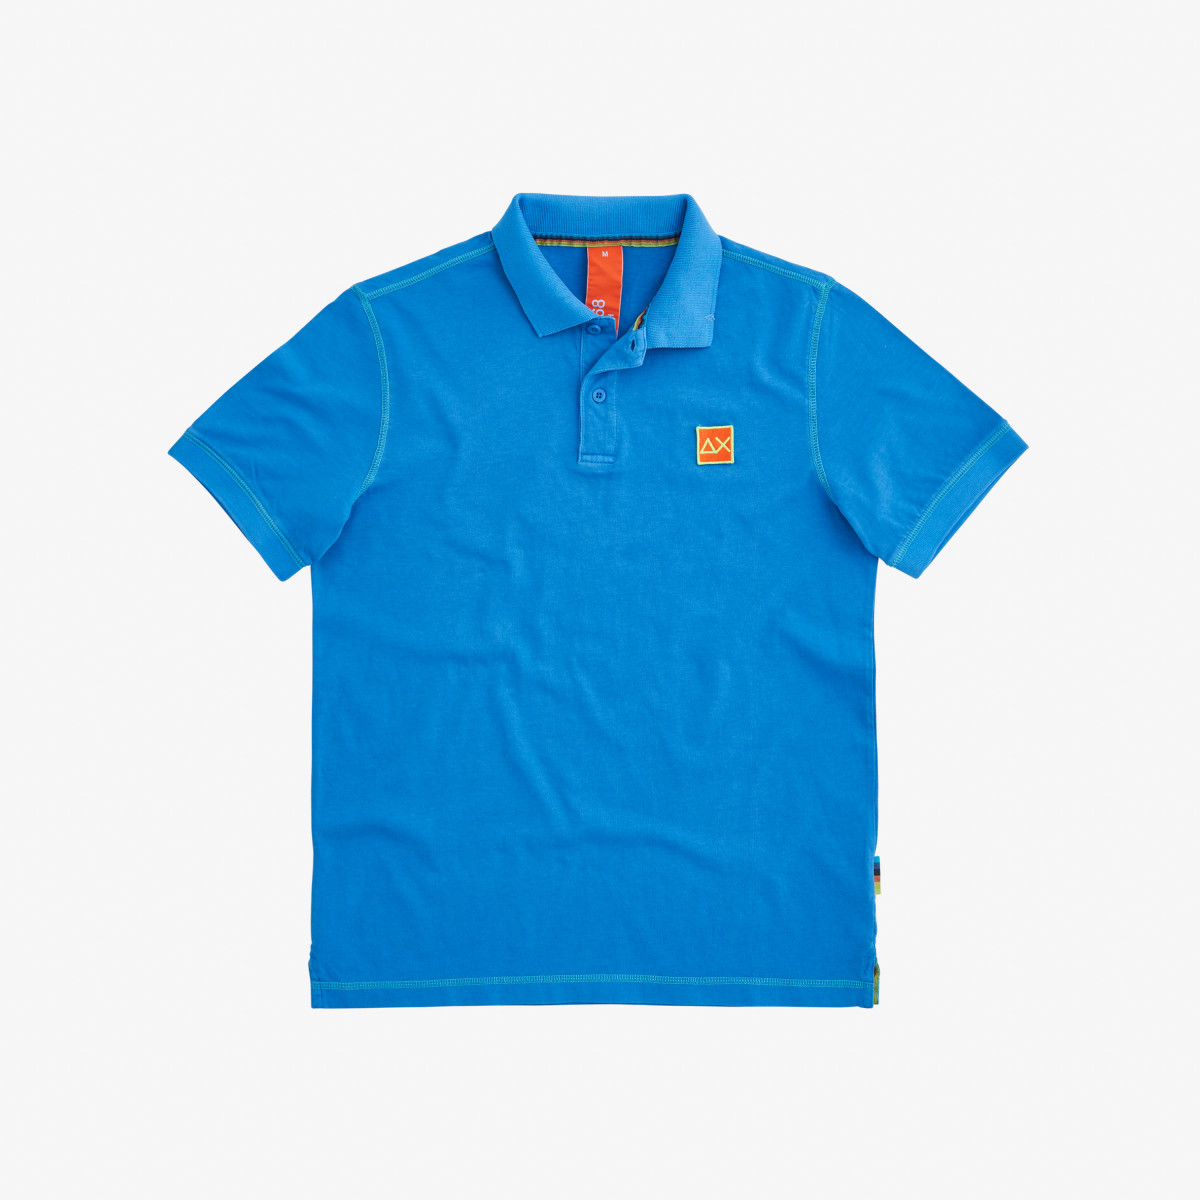 POLO COLD DYE CONTRAST STITCHING BLUE